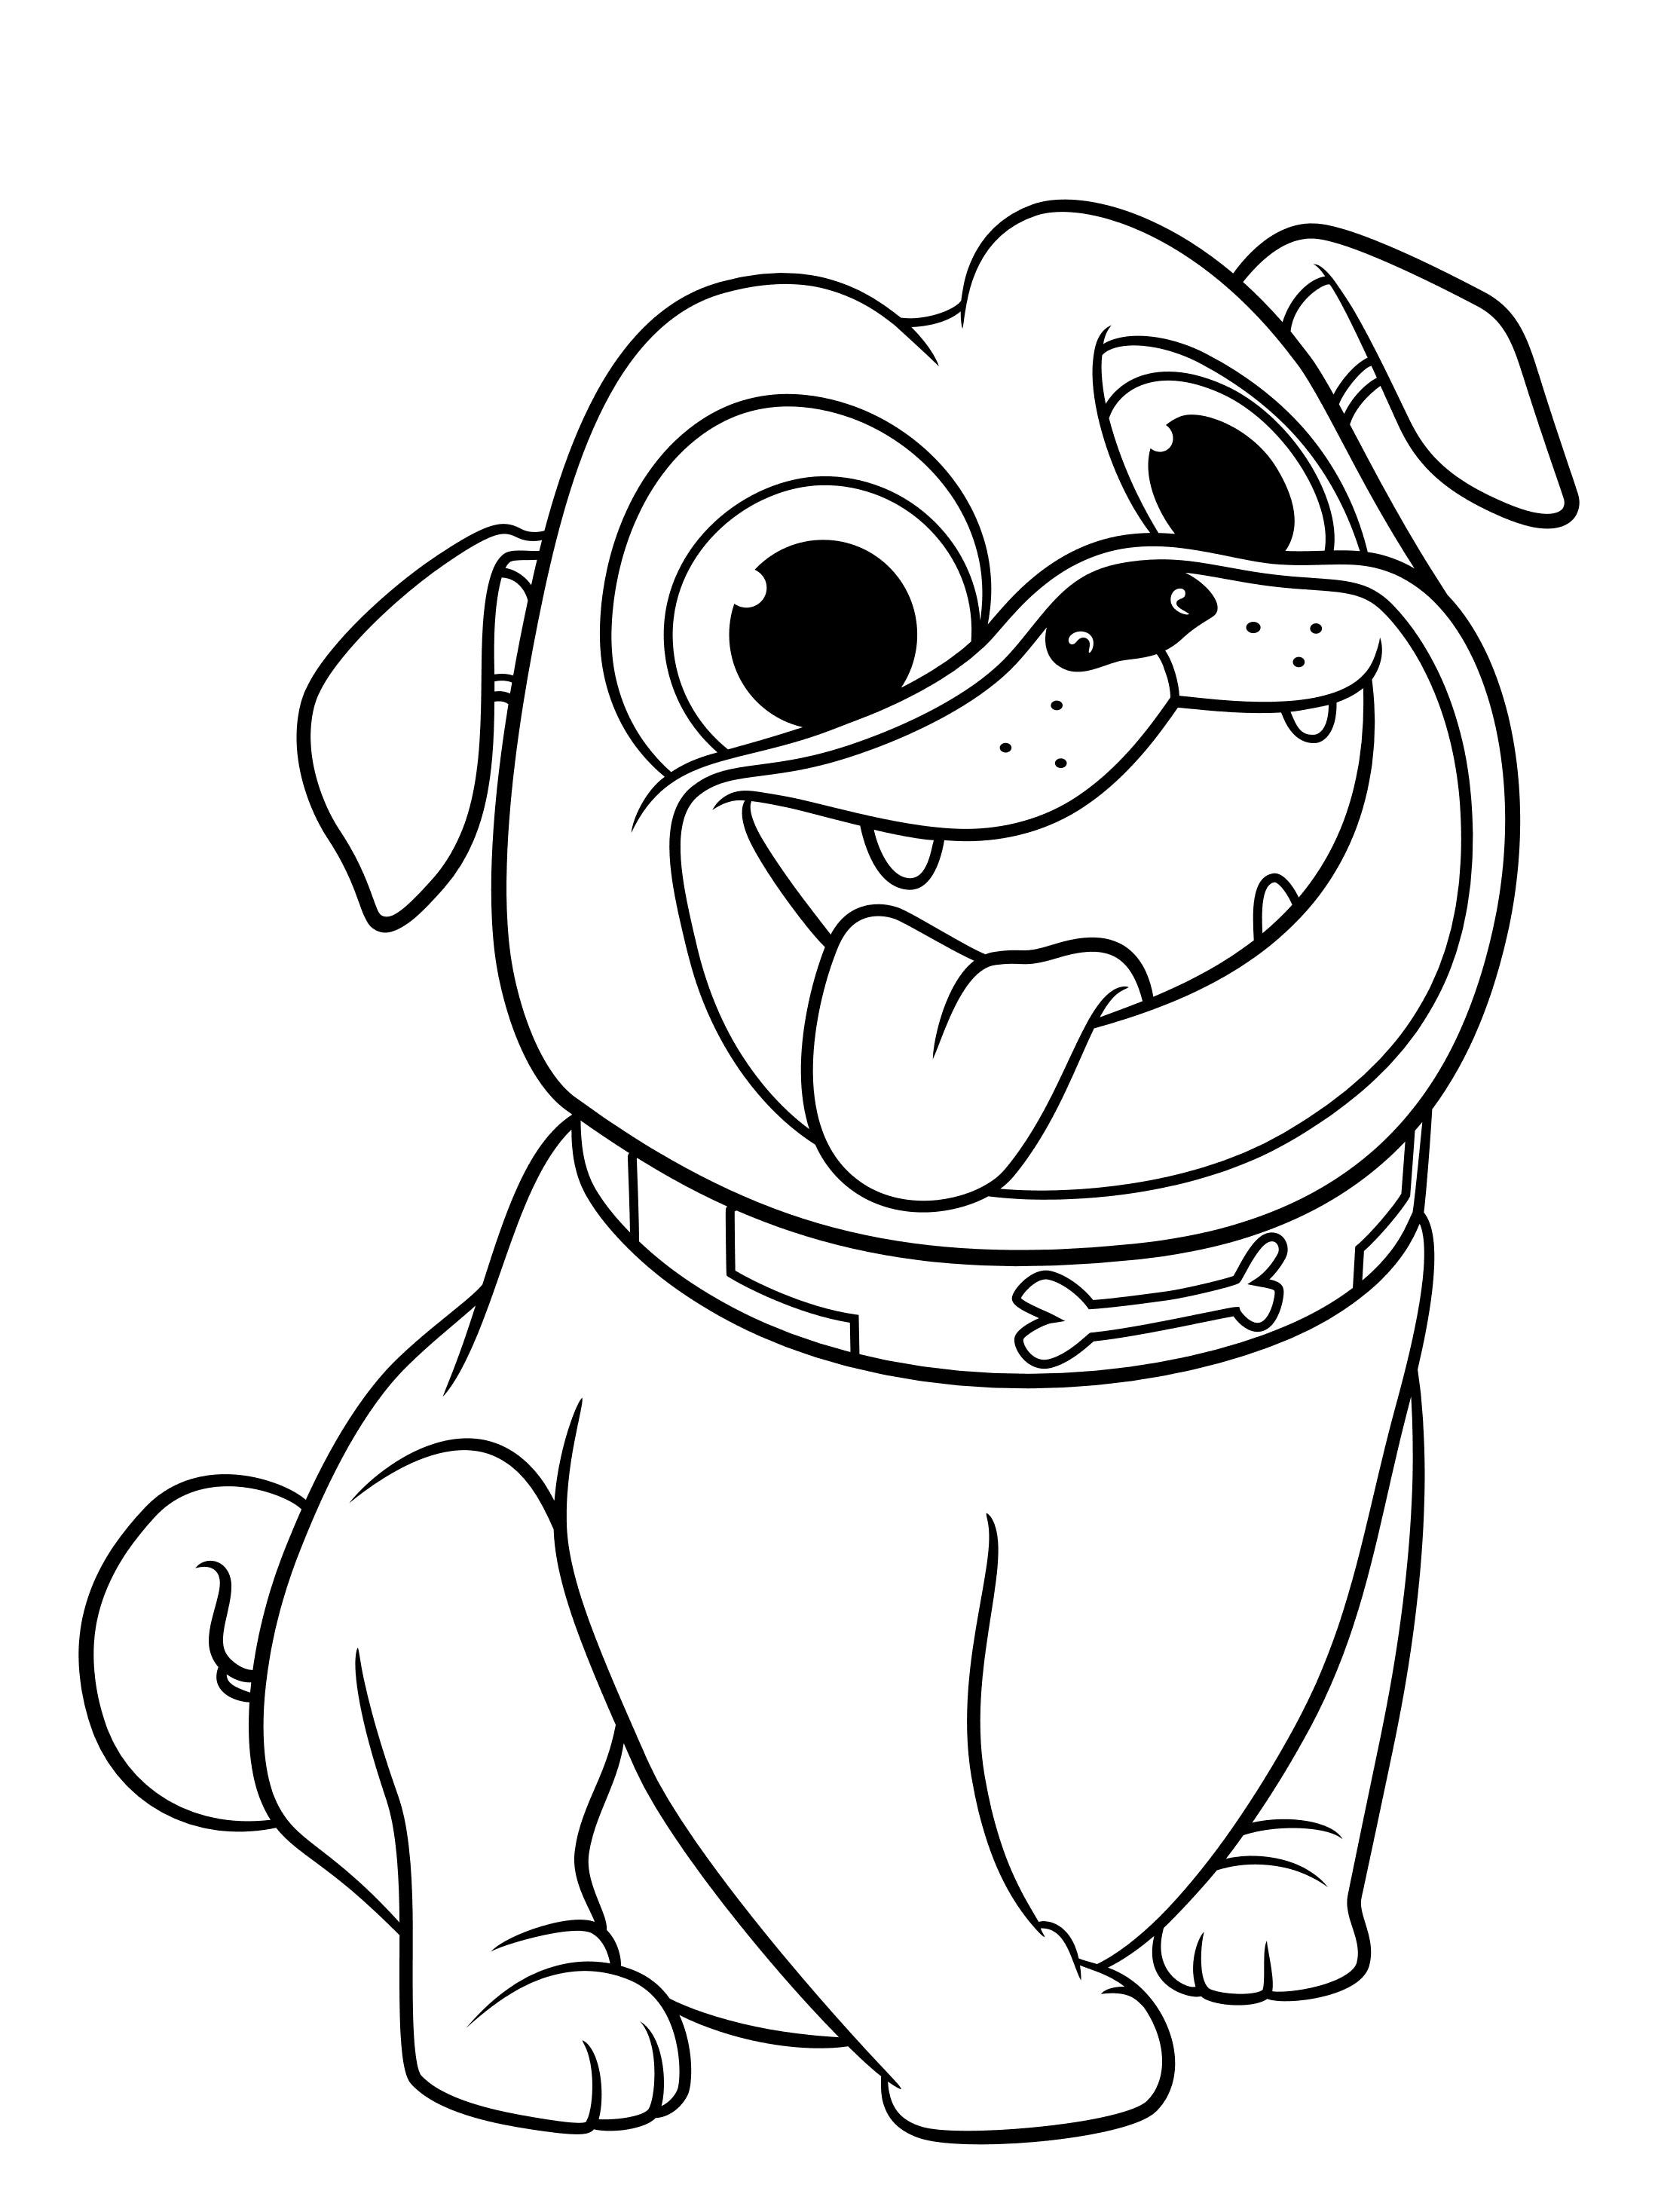 coloring page puppy puppy coloring pages best coloring pages for kids puppy coloring page